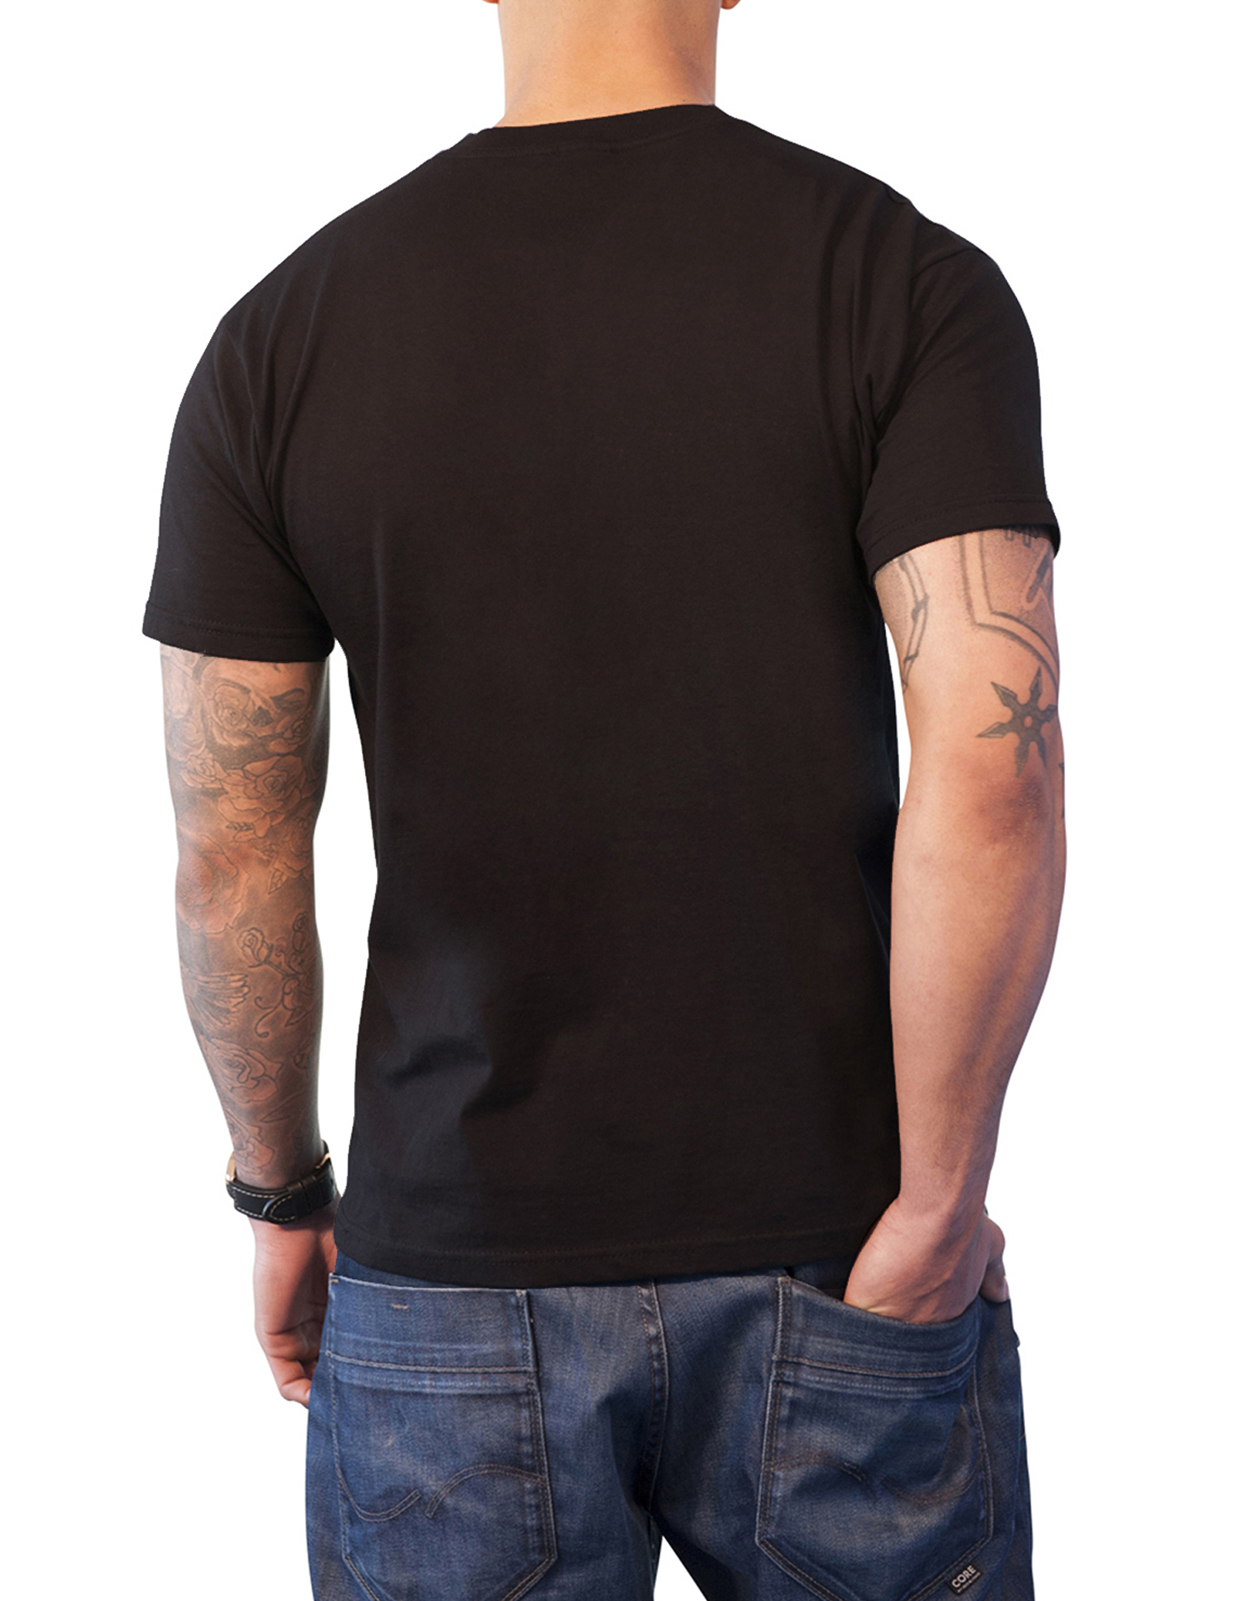 Officiel-DEF-LEPPARD-T-Shirt-hysterie-Adrenalize-through-the-night-Logo-Homme-NEUF miniature 9